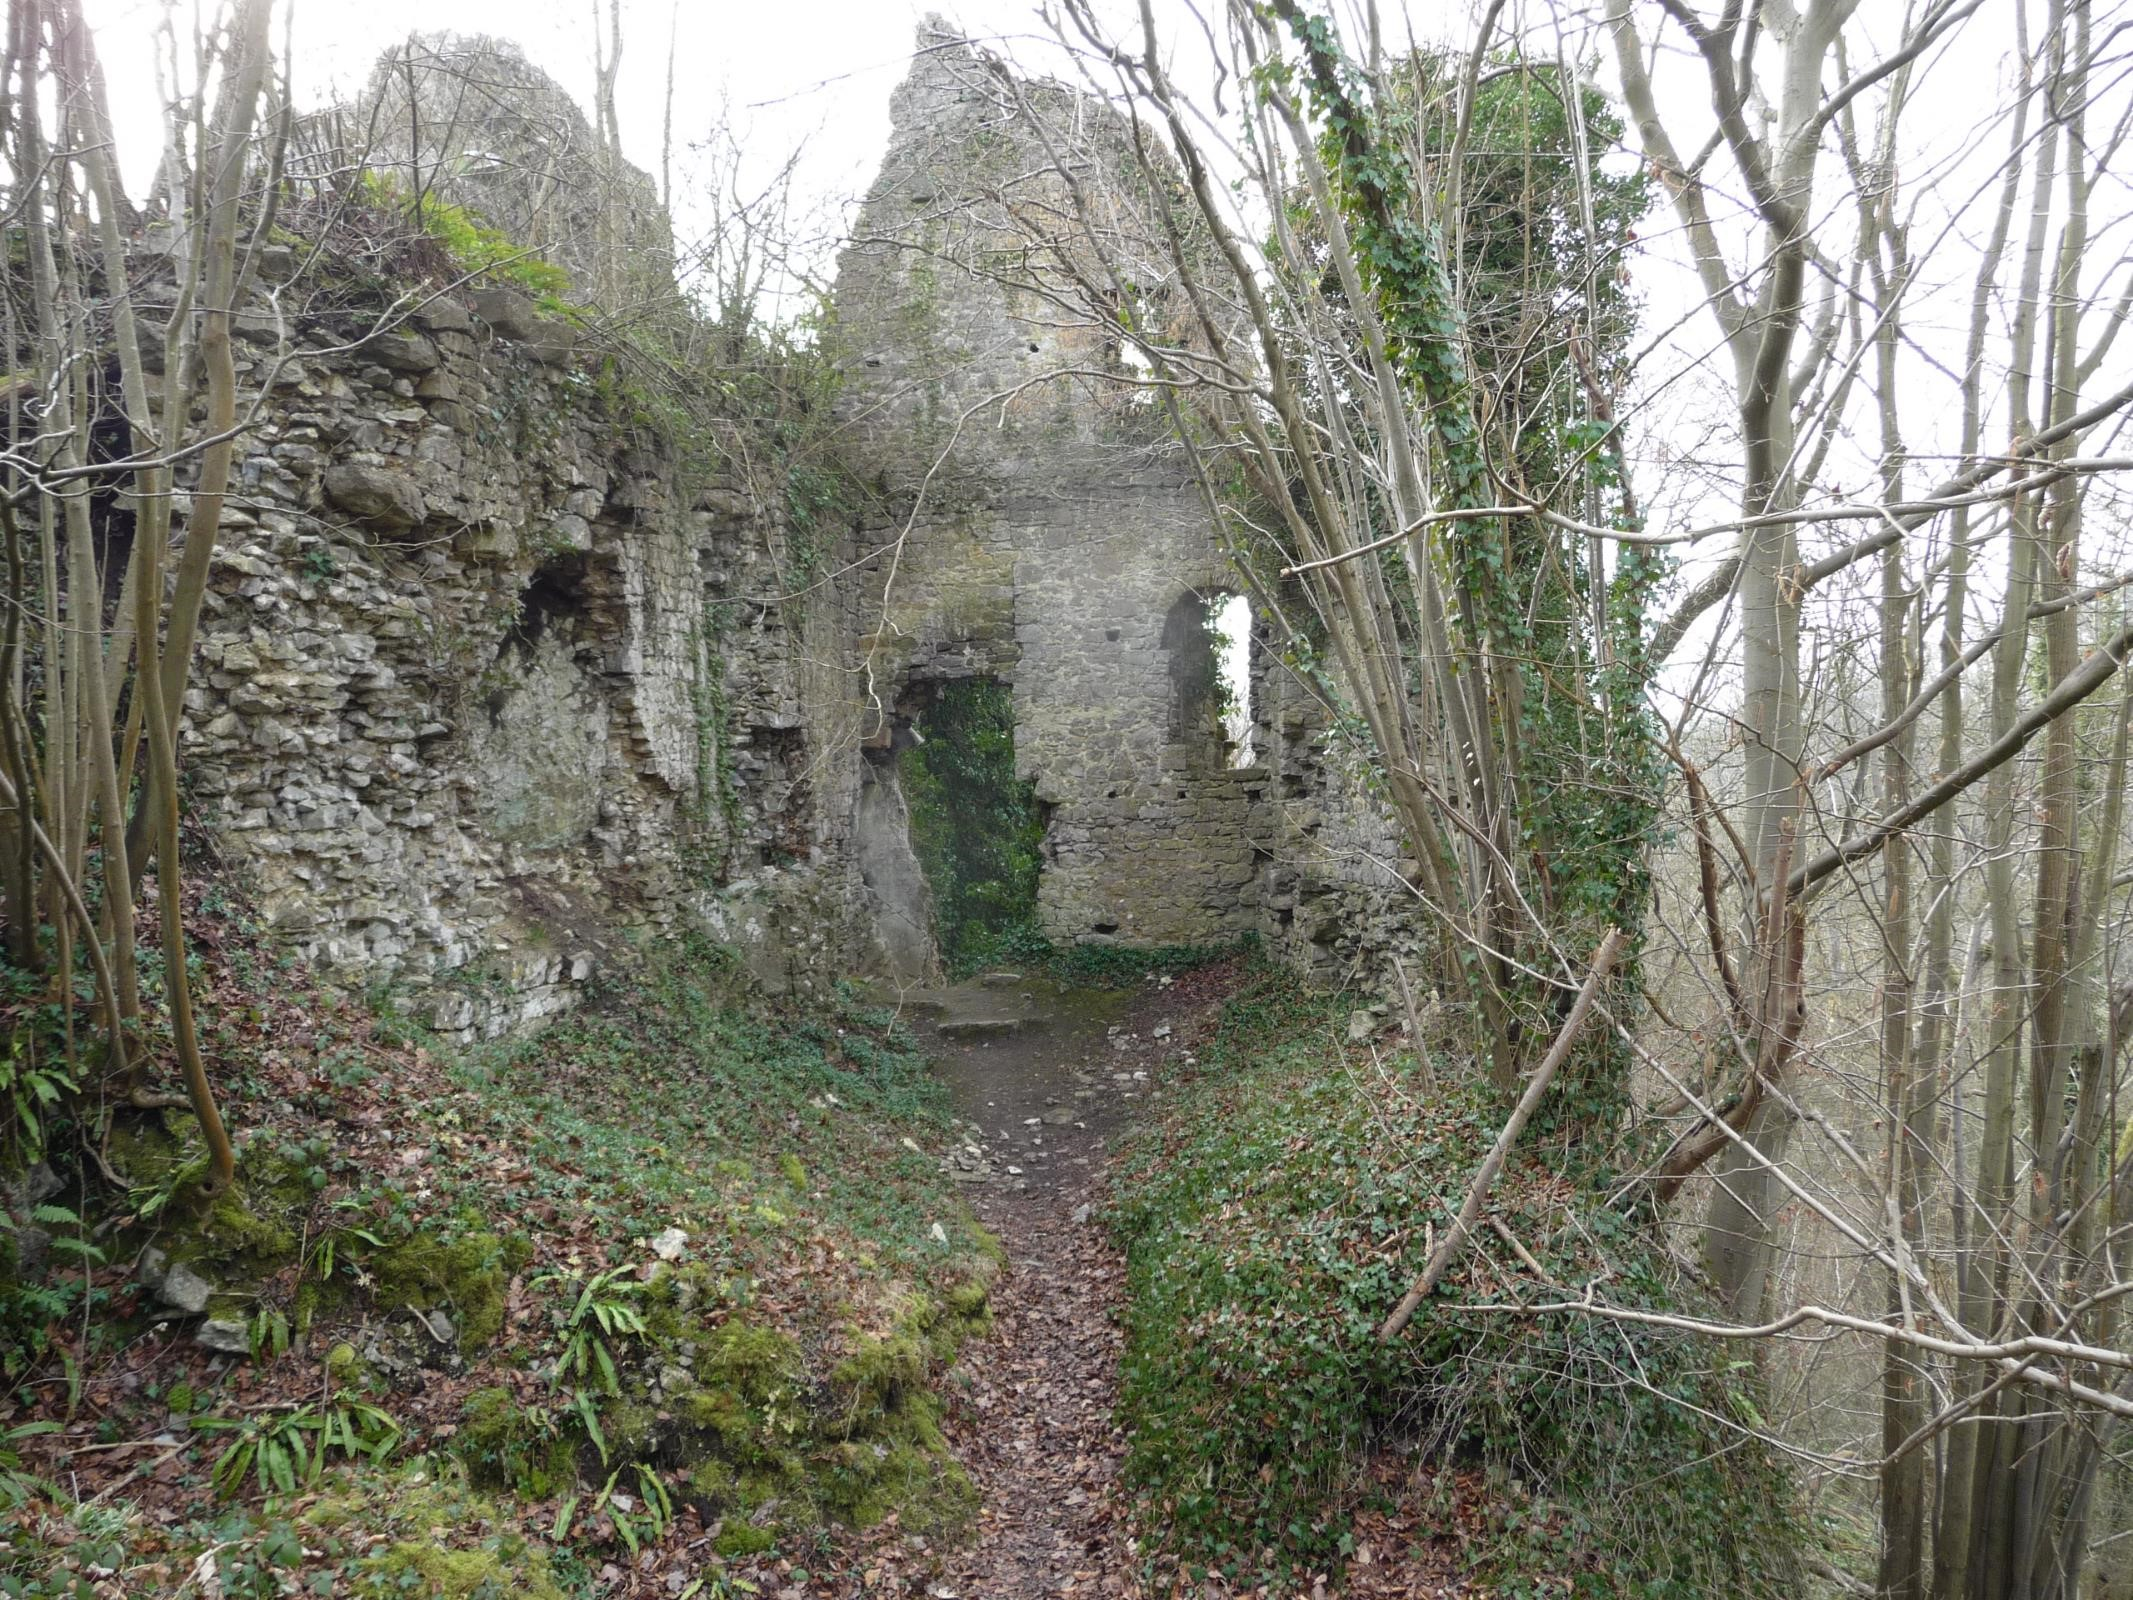 GR571 The Ruins of Chateau Ambleve